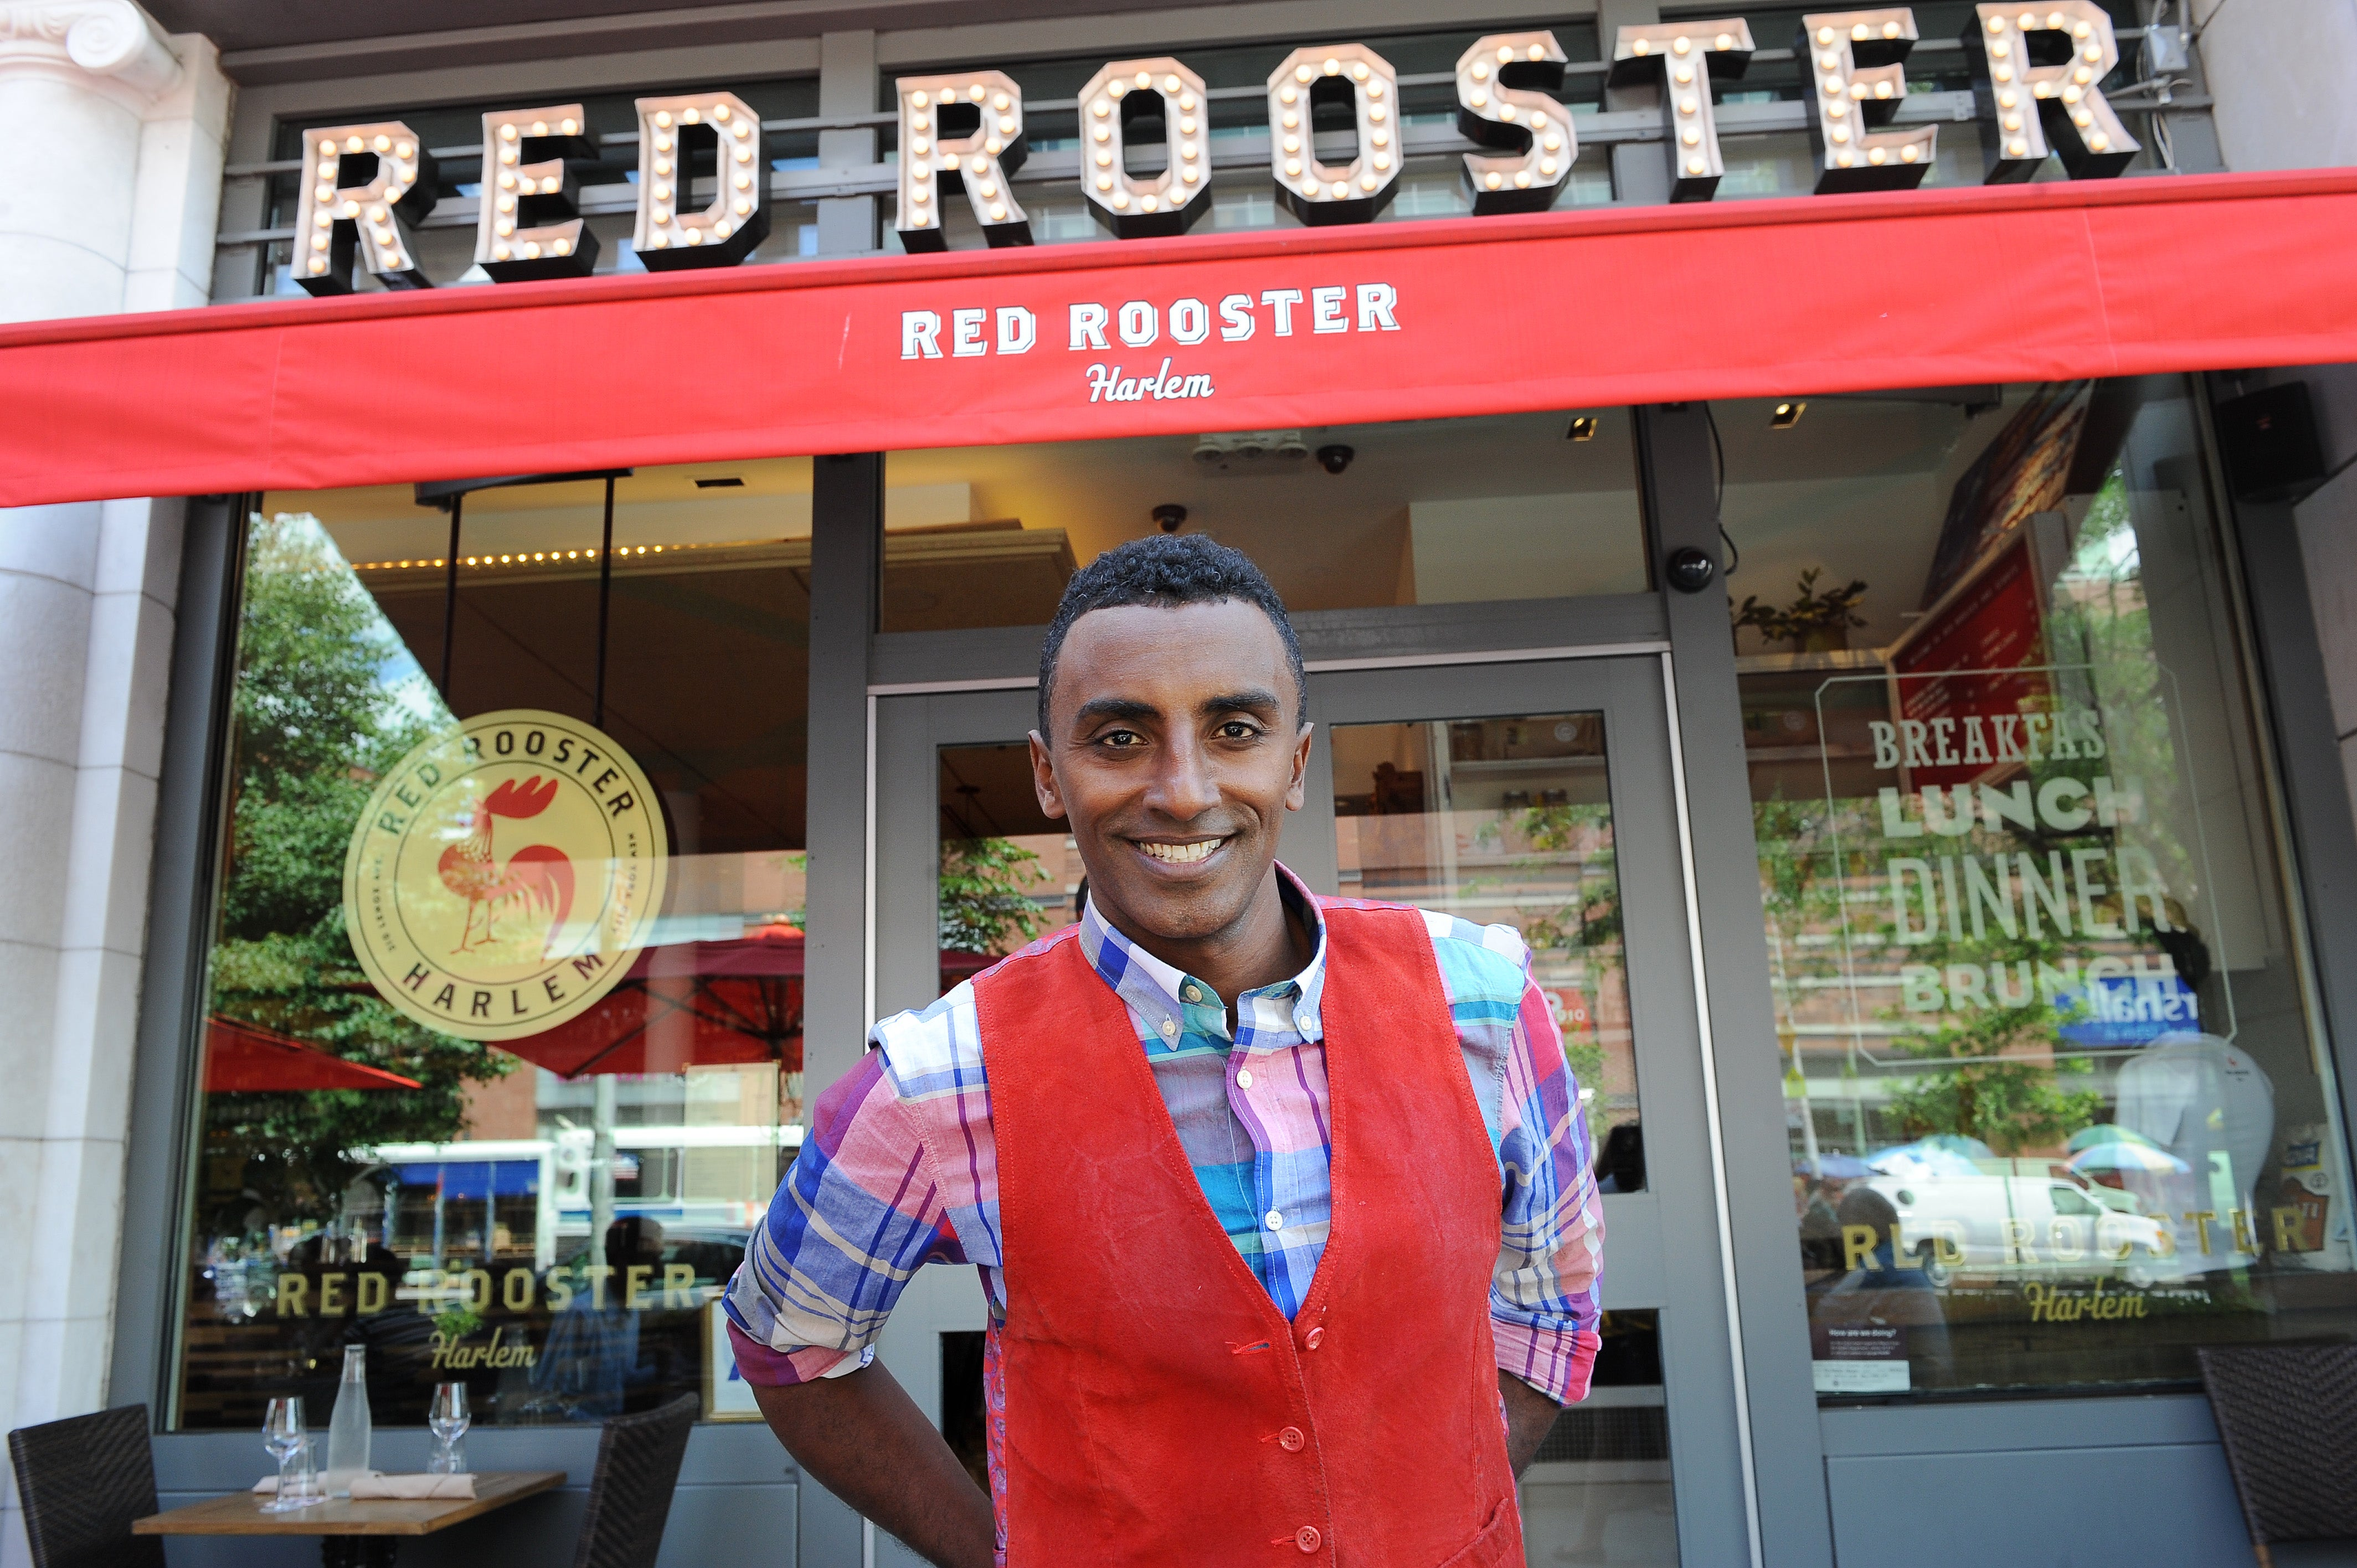 Celebrity chef Marcus Samuelsson at his Harlem restaurant Red Rooster. Last week the restauranteur opened two of his restaurants to serve as food assistance sites during the pandemic.